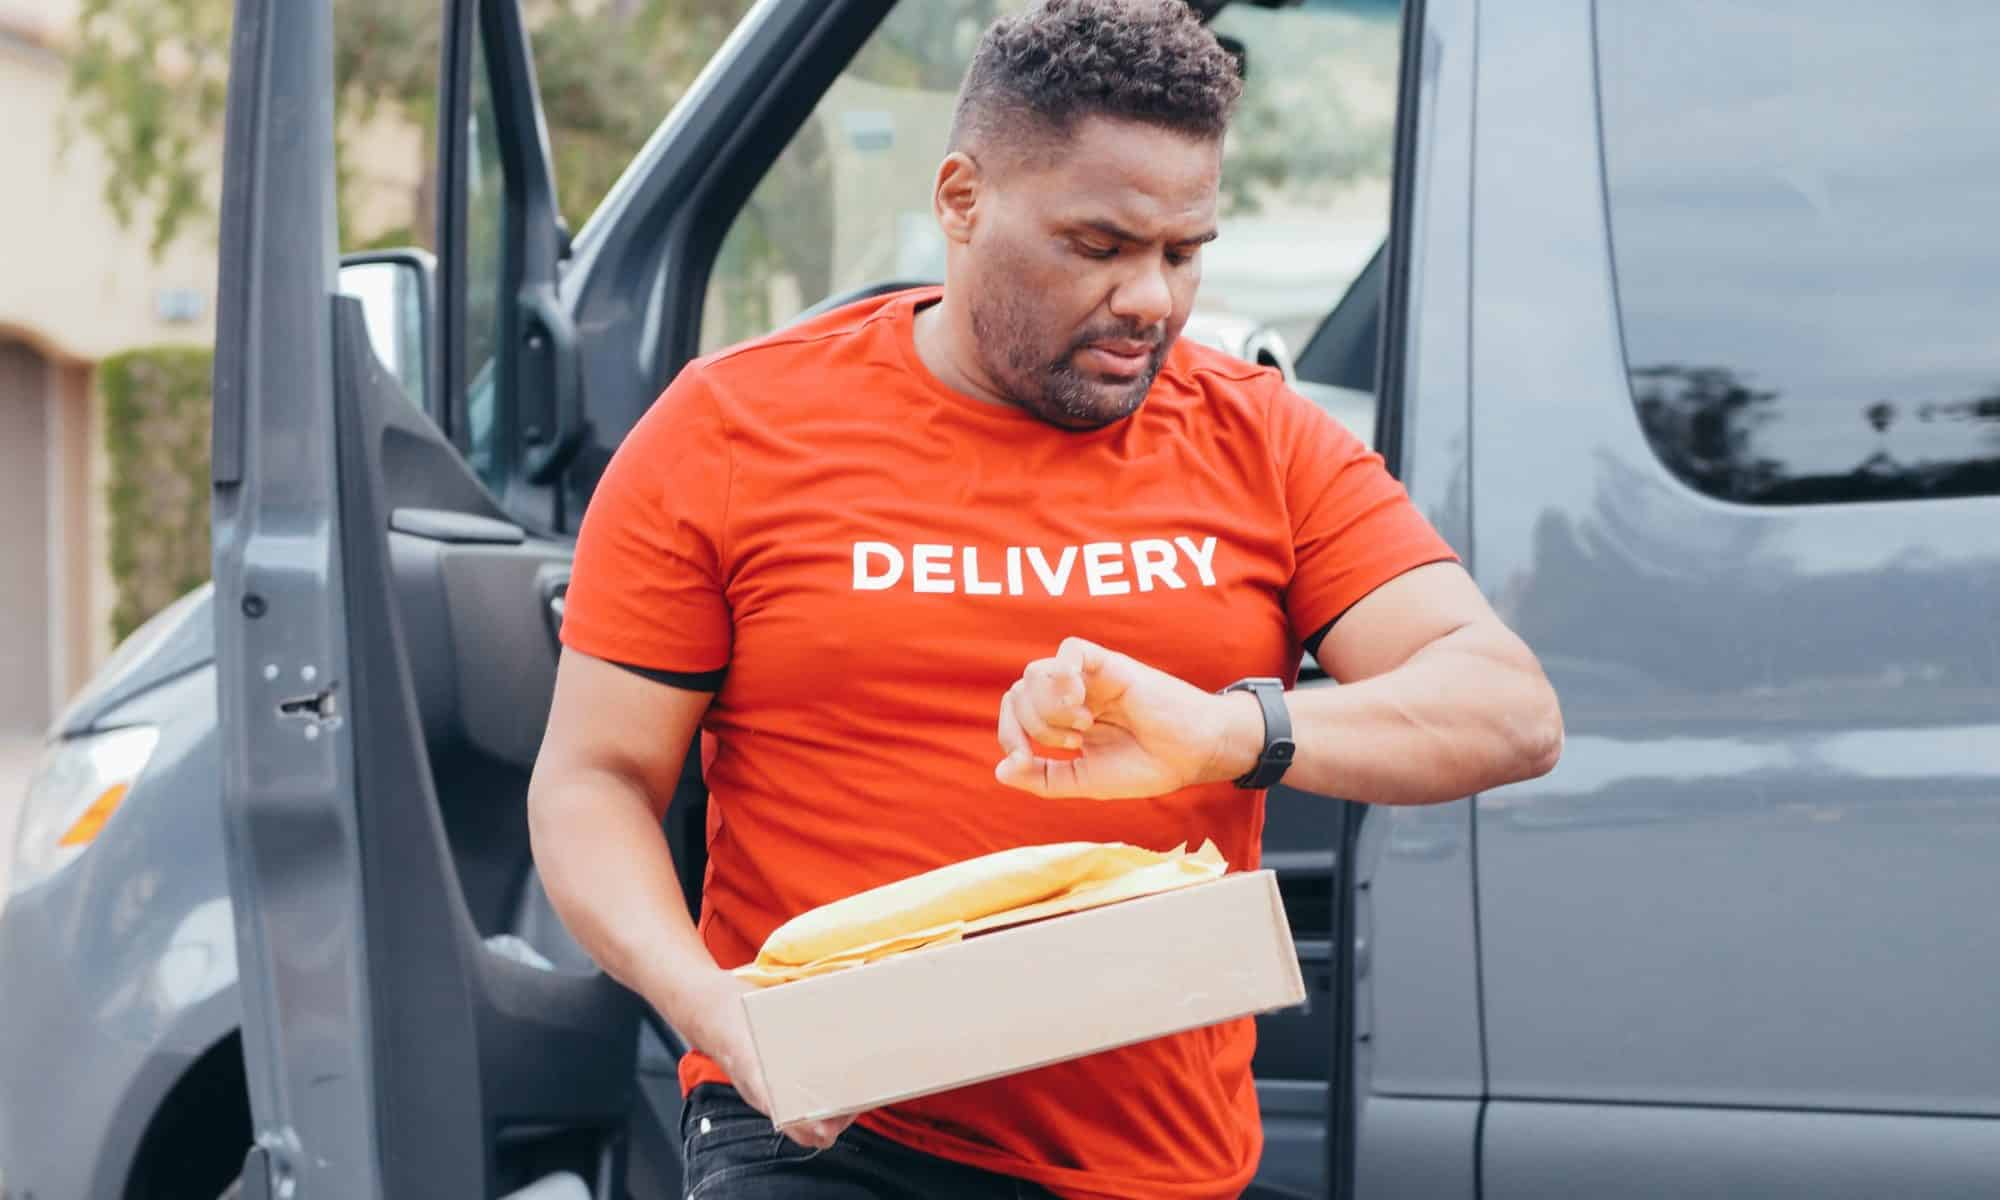 Delivery man steps out of truck and checks watch